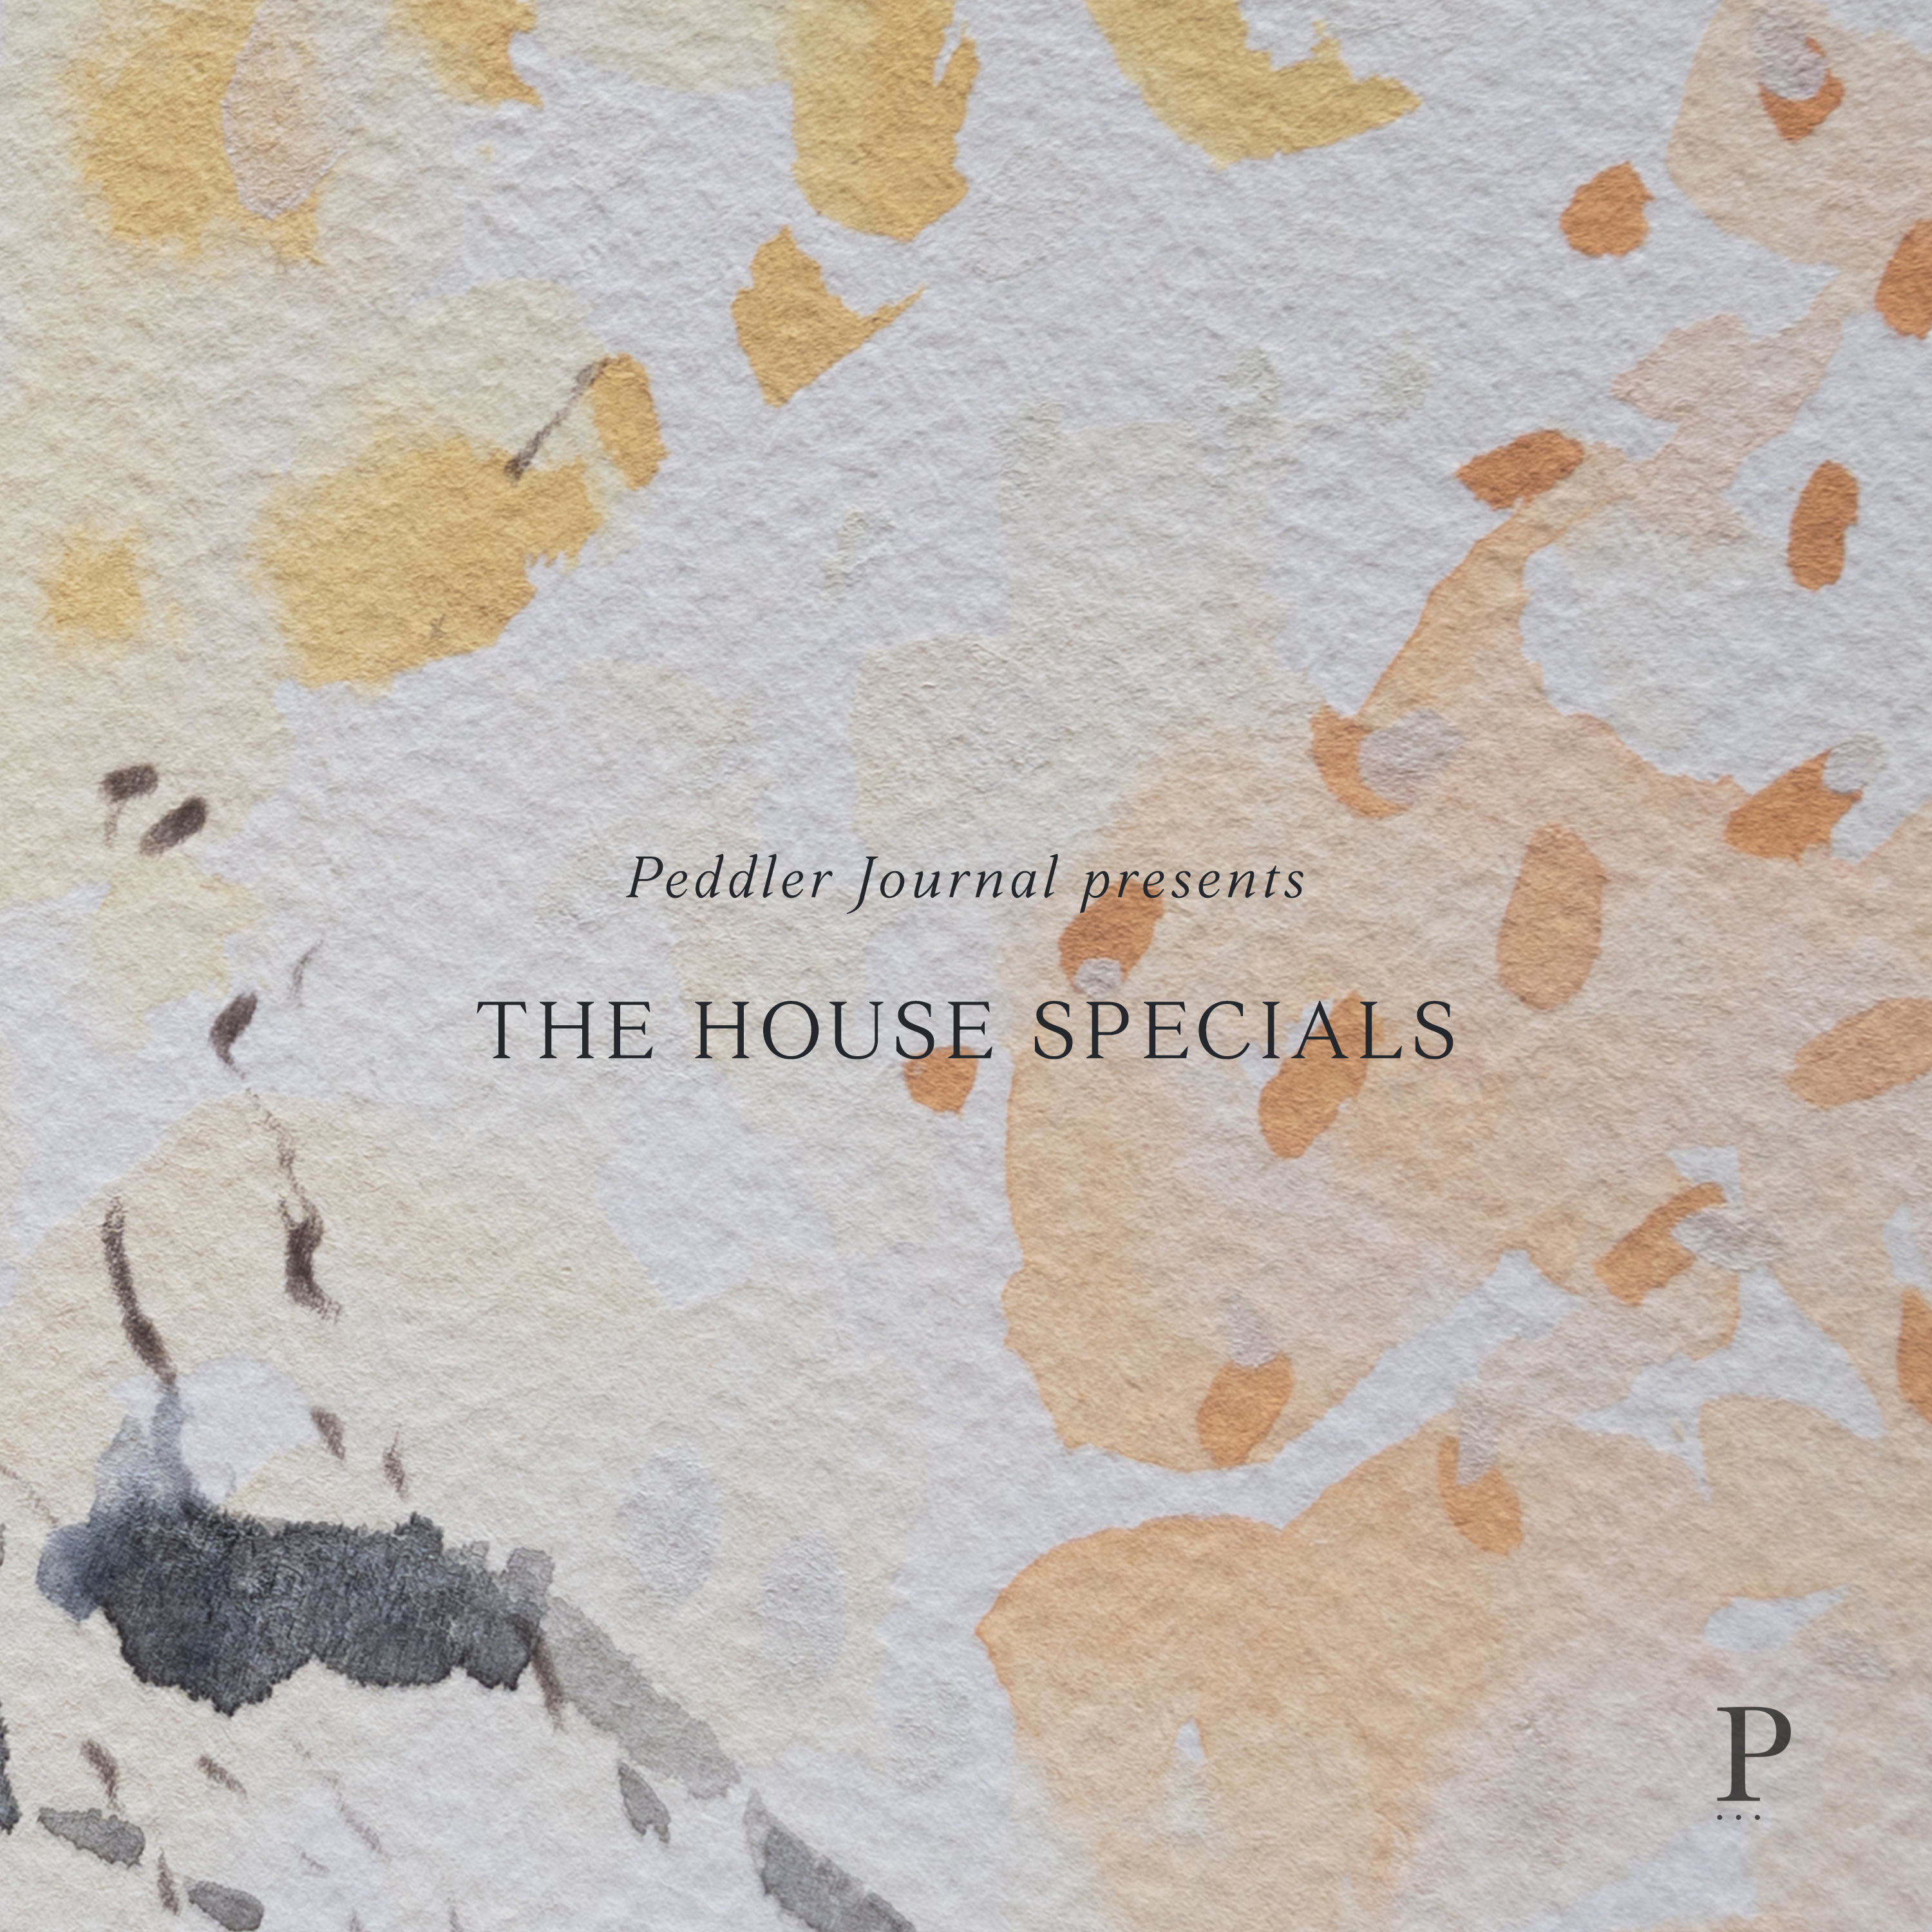 The House Specials